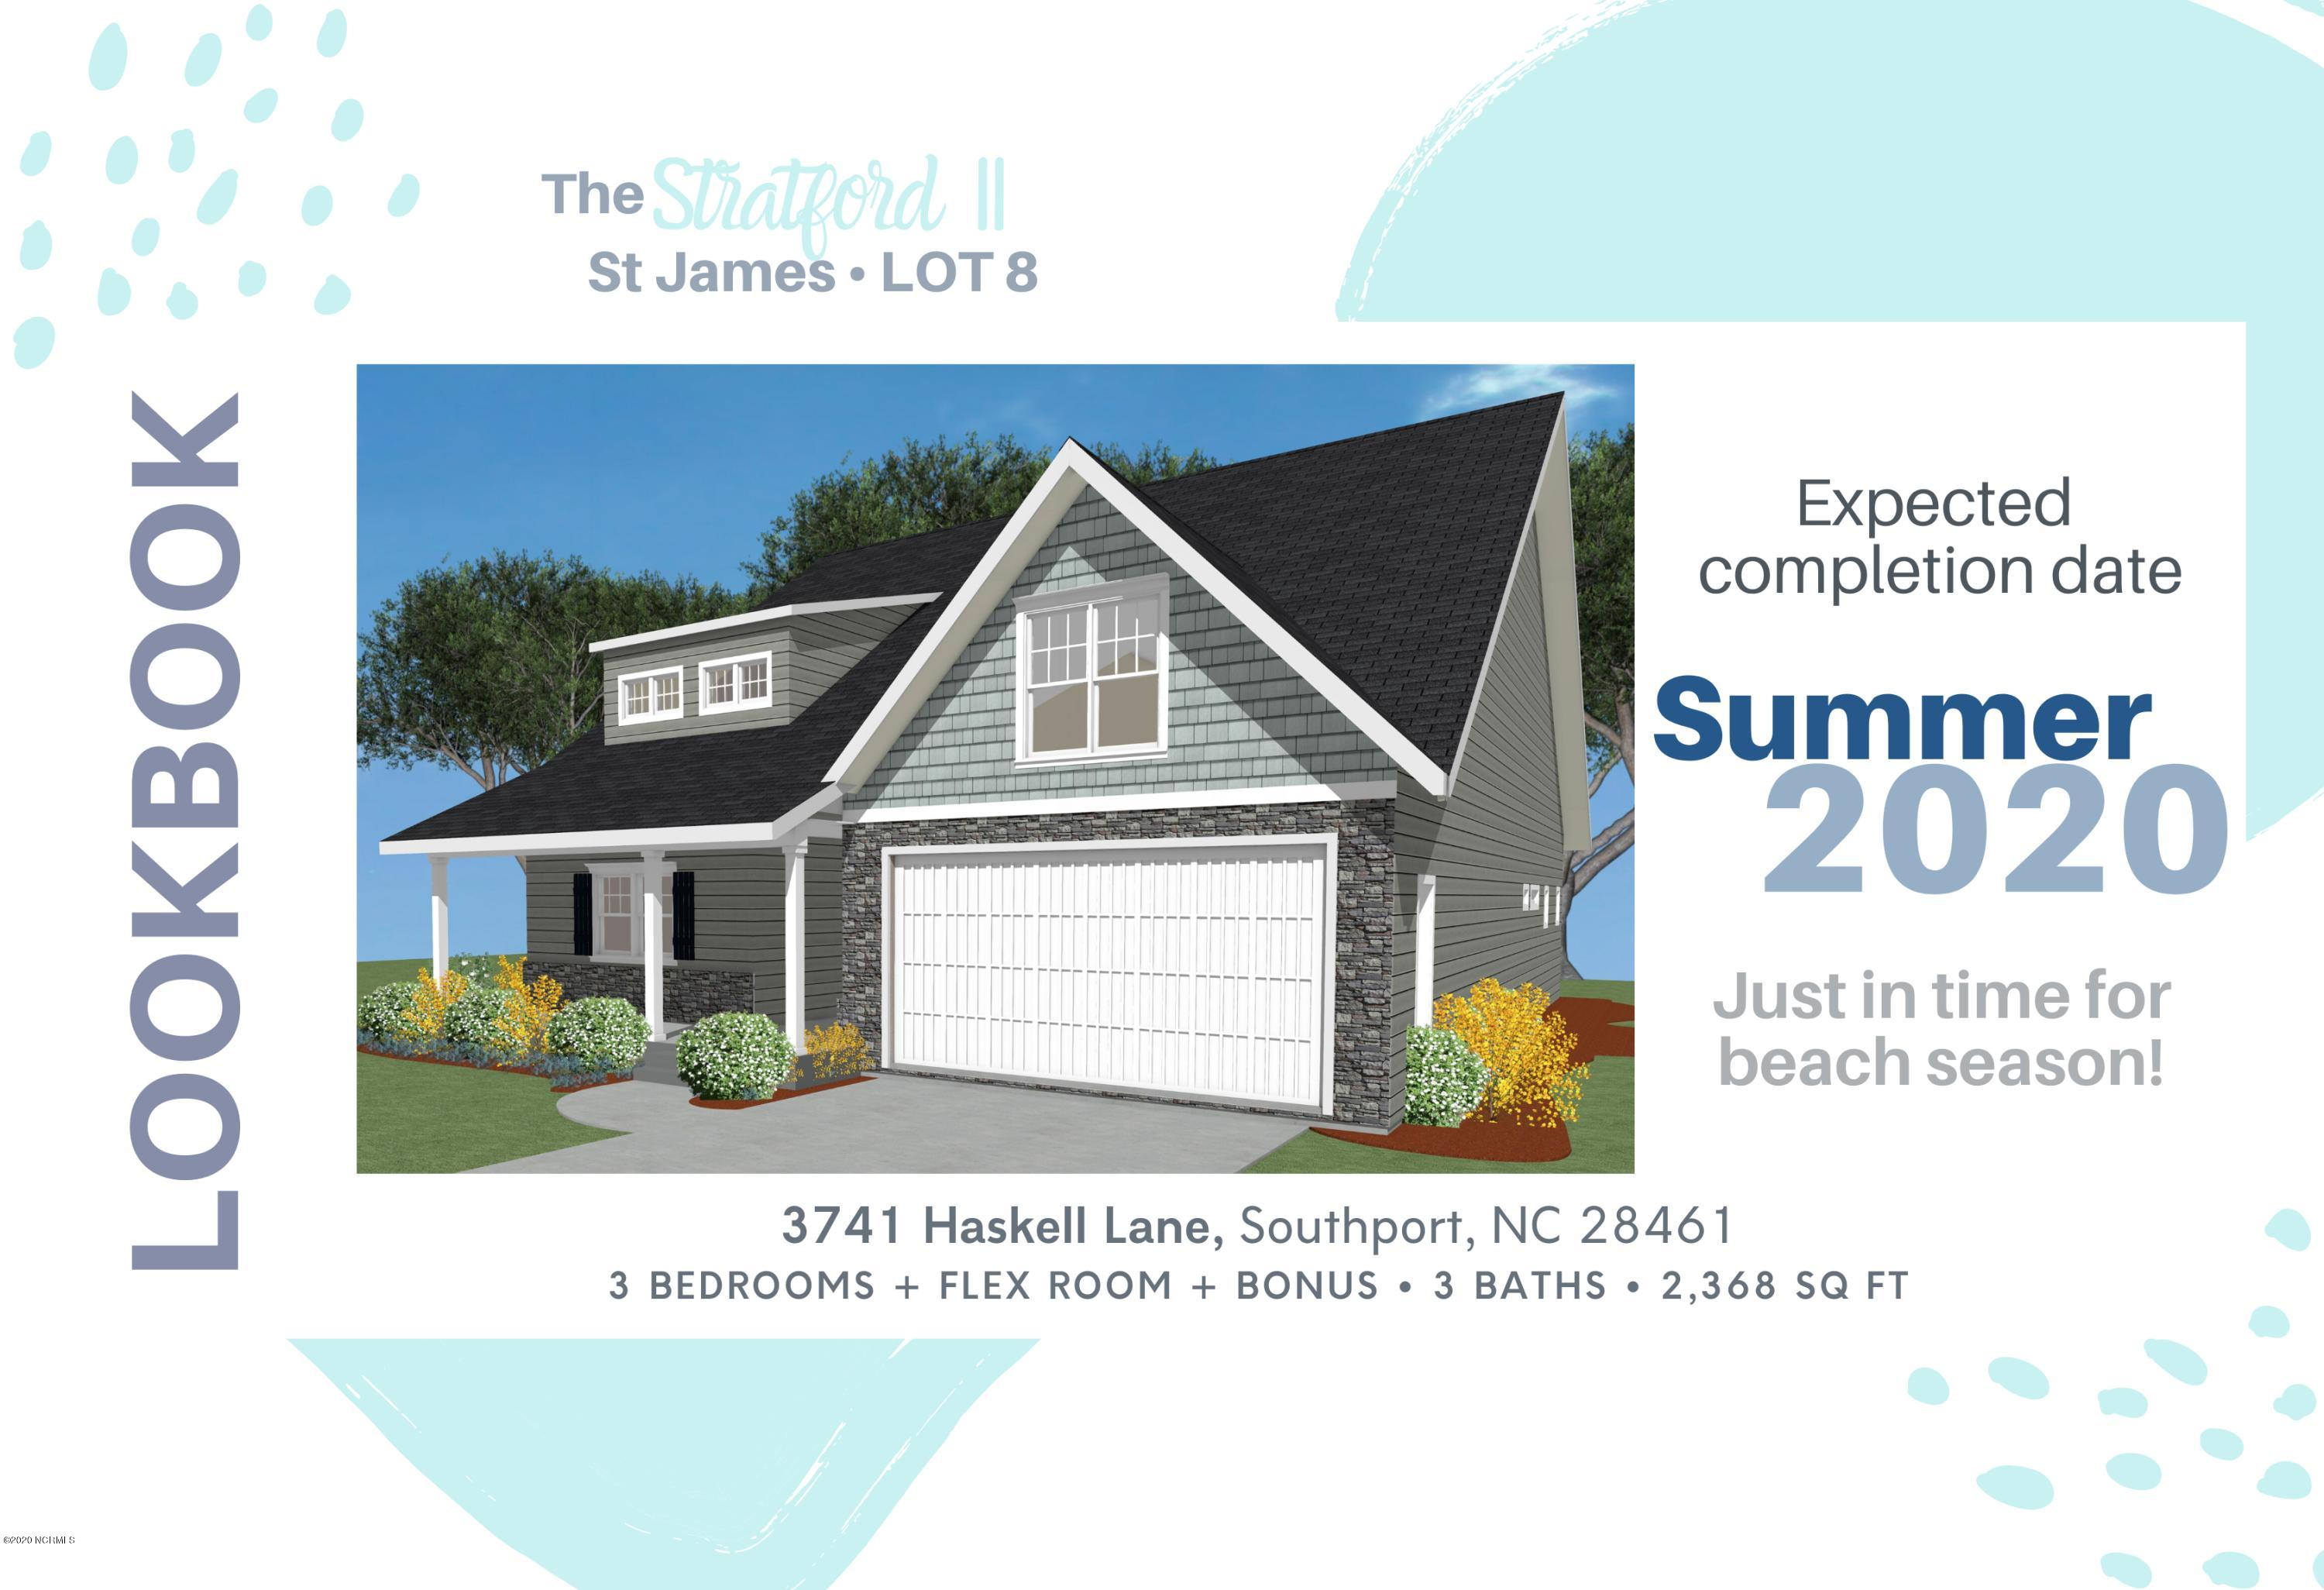 3471 Haskell Lane Southport, NC 28461